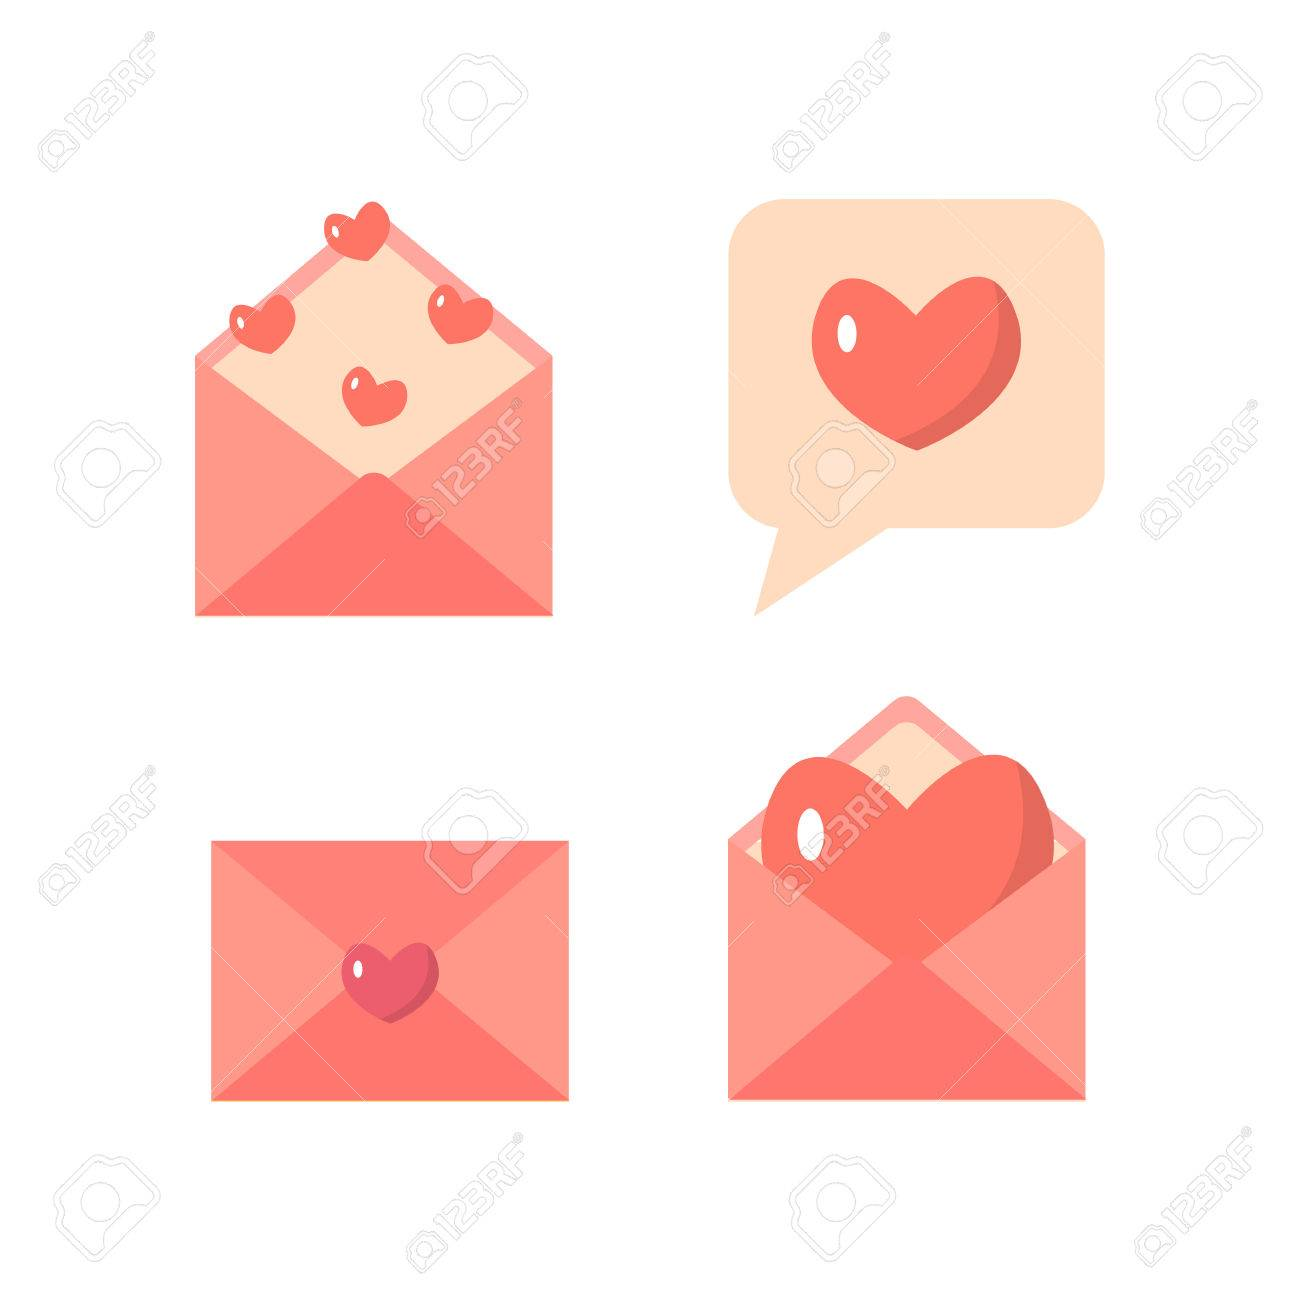 Flat Love Letter And Email Icons Set Valentine S Day Or Wedding